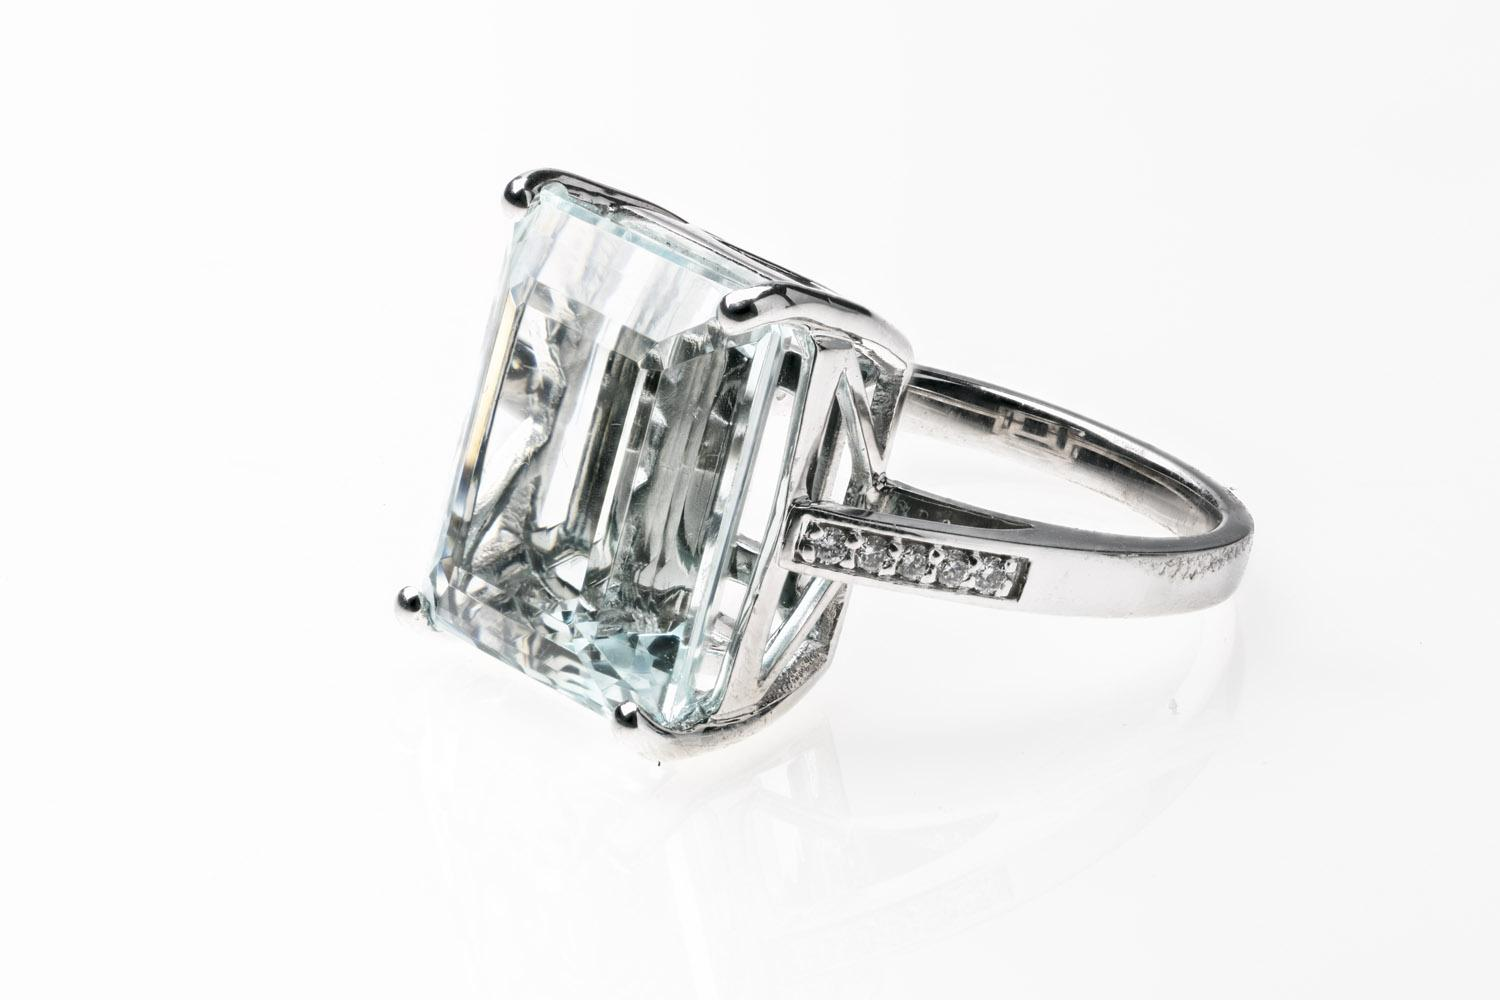 847e0dc45cf Lot 60 of 248: An aquamarine and diamond ring, four claw set with a  rectangular step cut aquamarine of known weight 13.38 carats, five small brilliant  cut ...